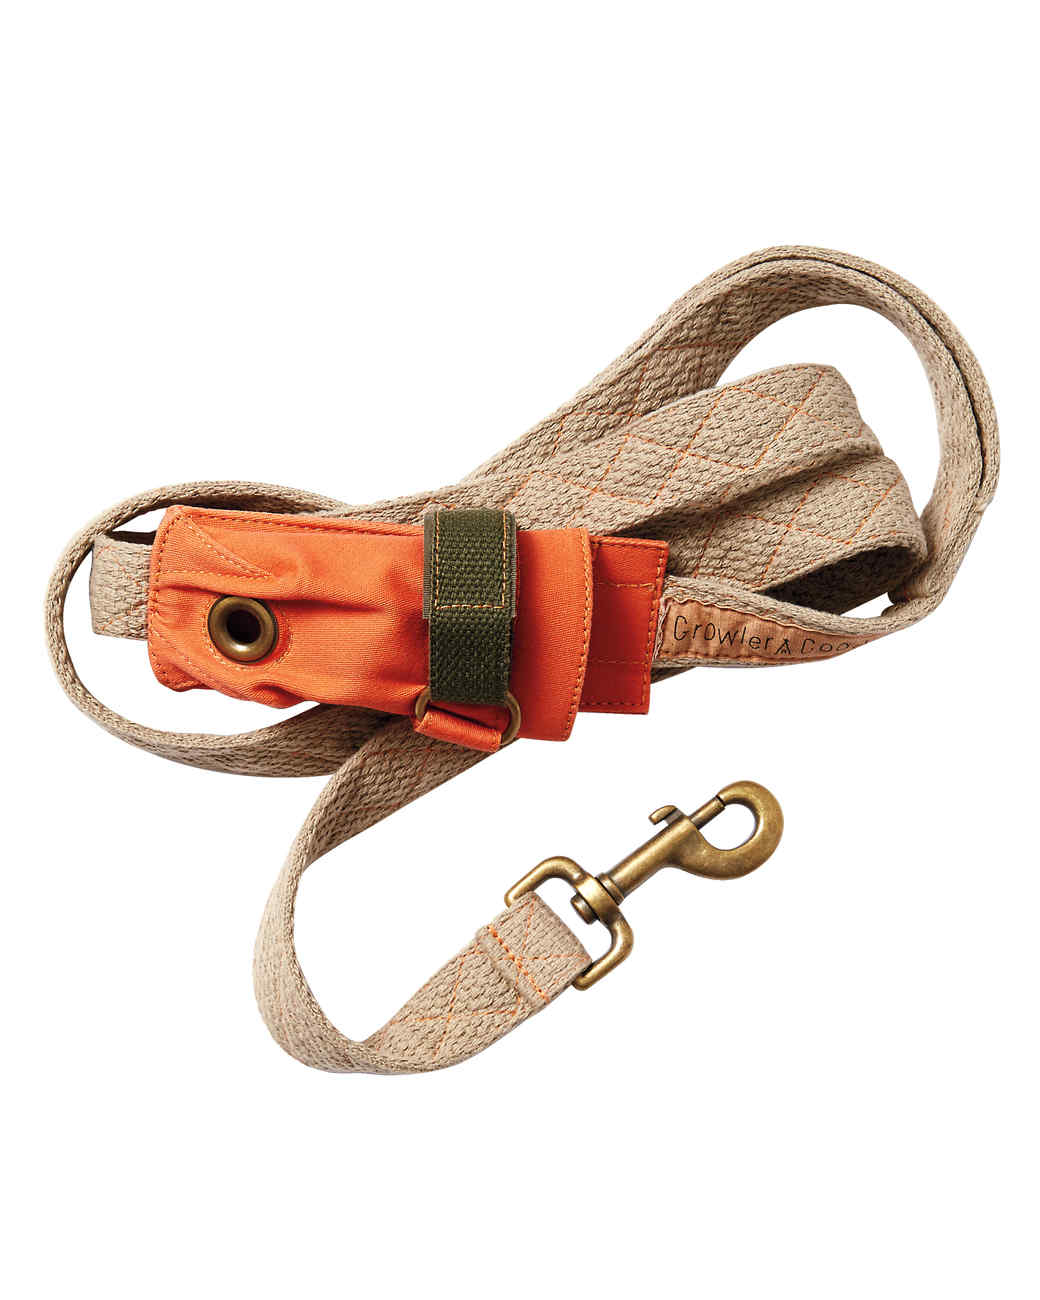 orpine-dog-leash-harness-268-d111550.jpg